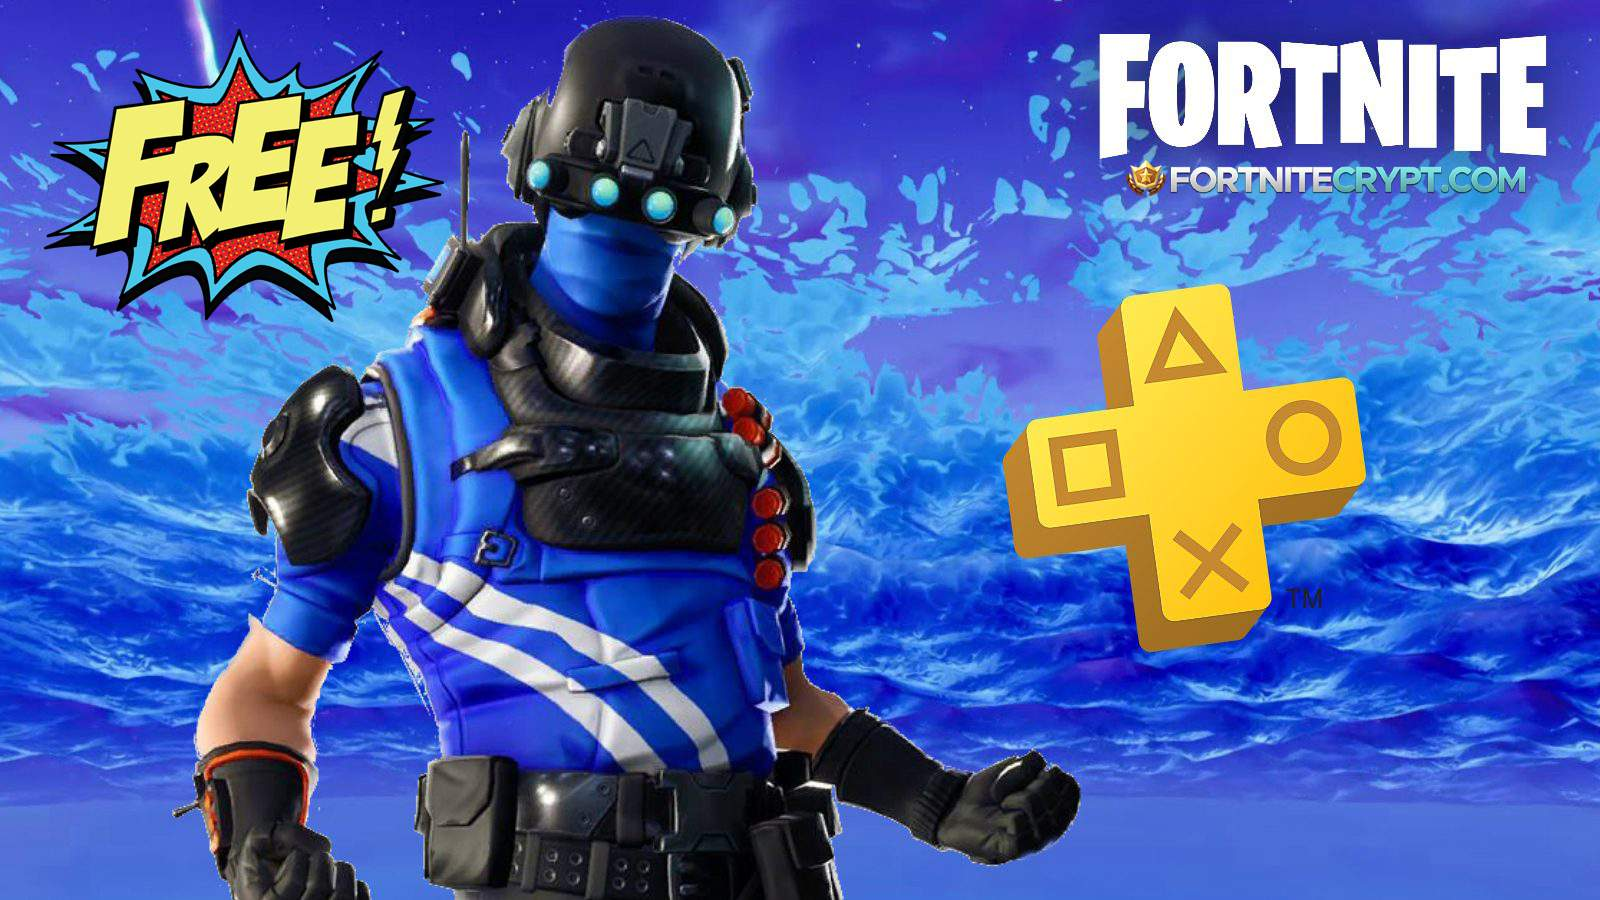 How to get free Fortnite Carbon skin PlayStation Plus pack